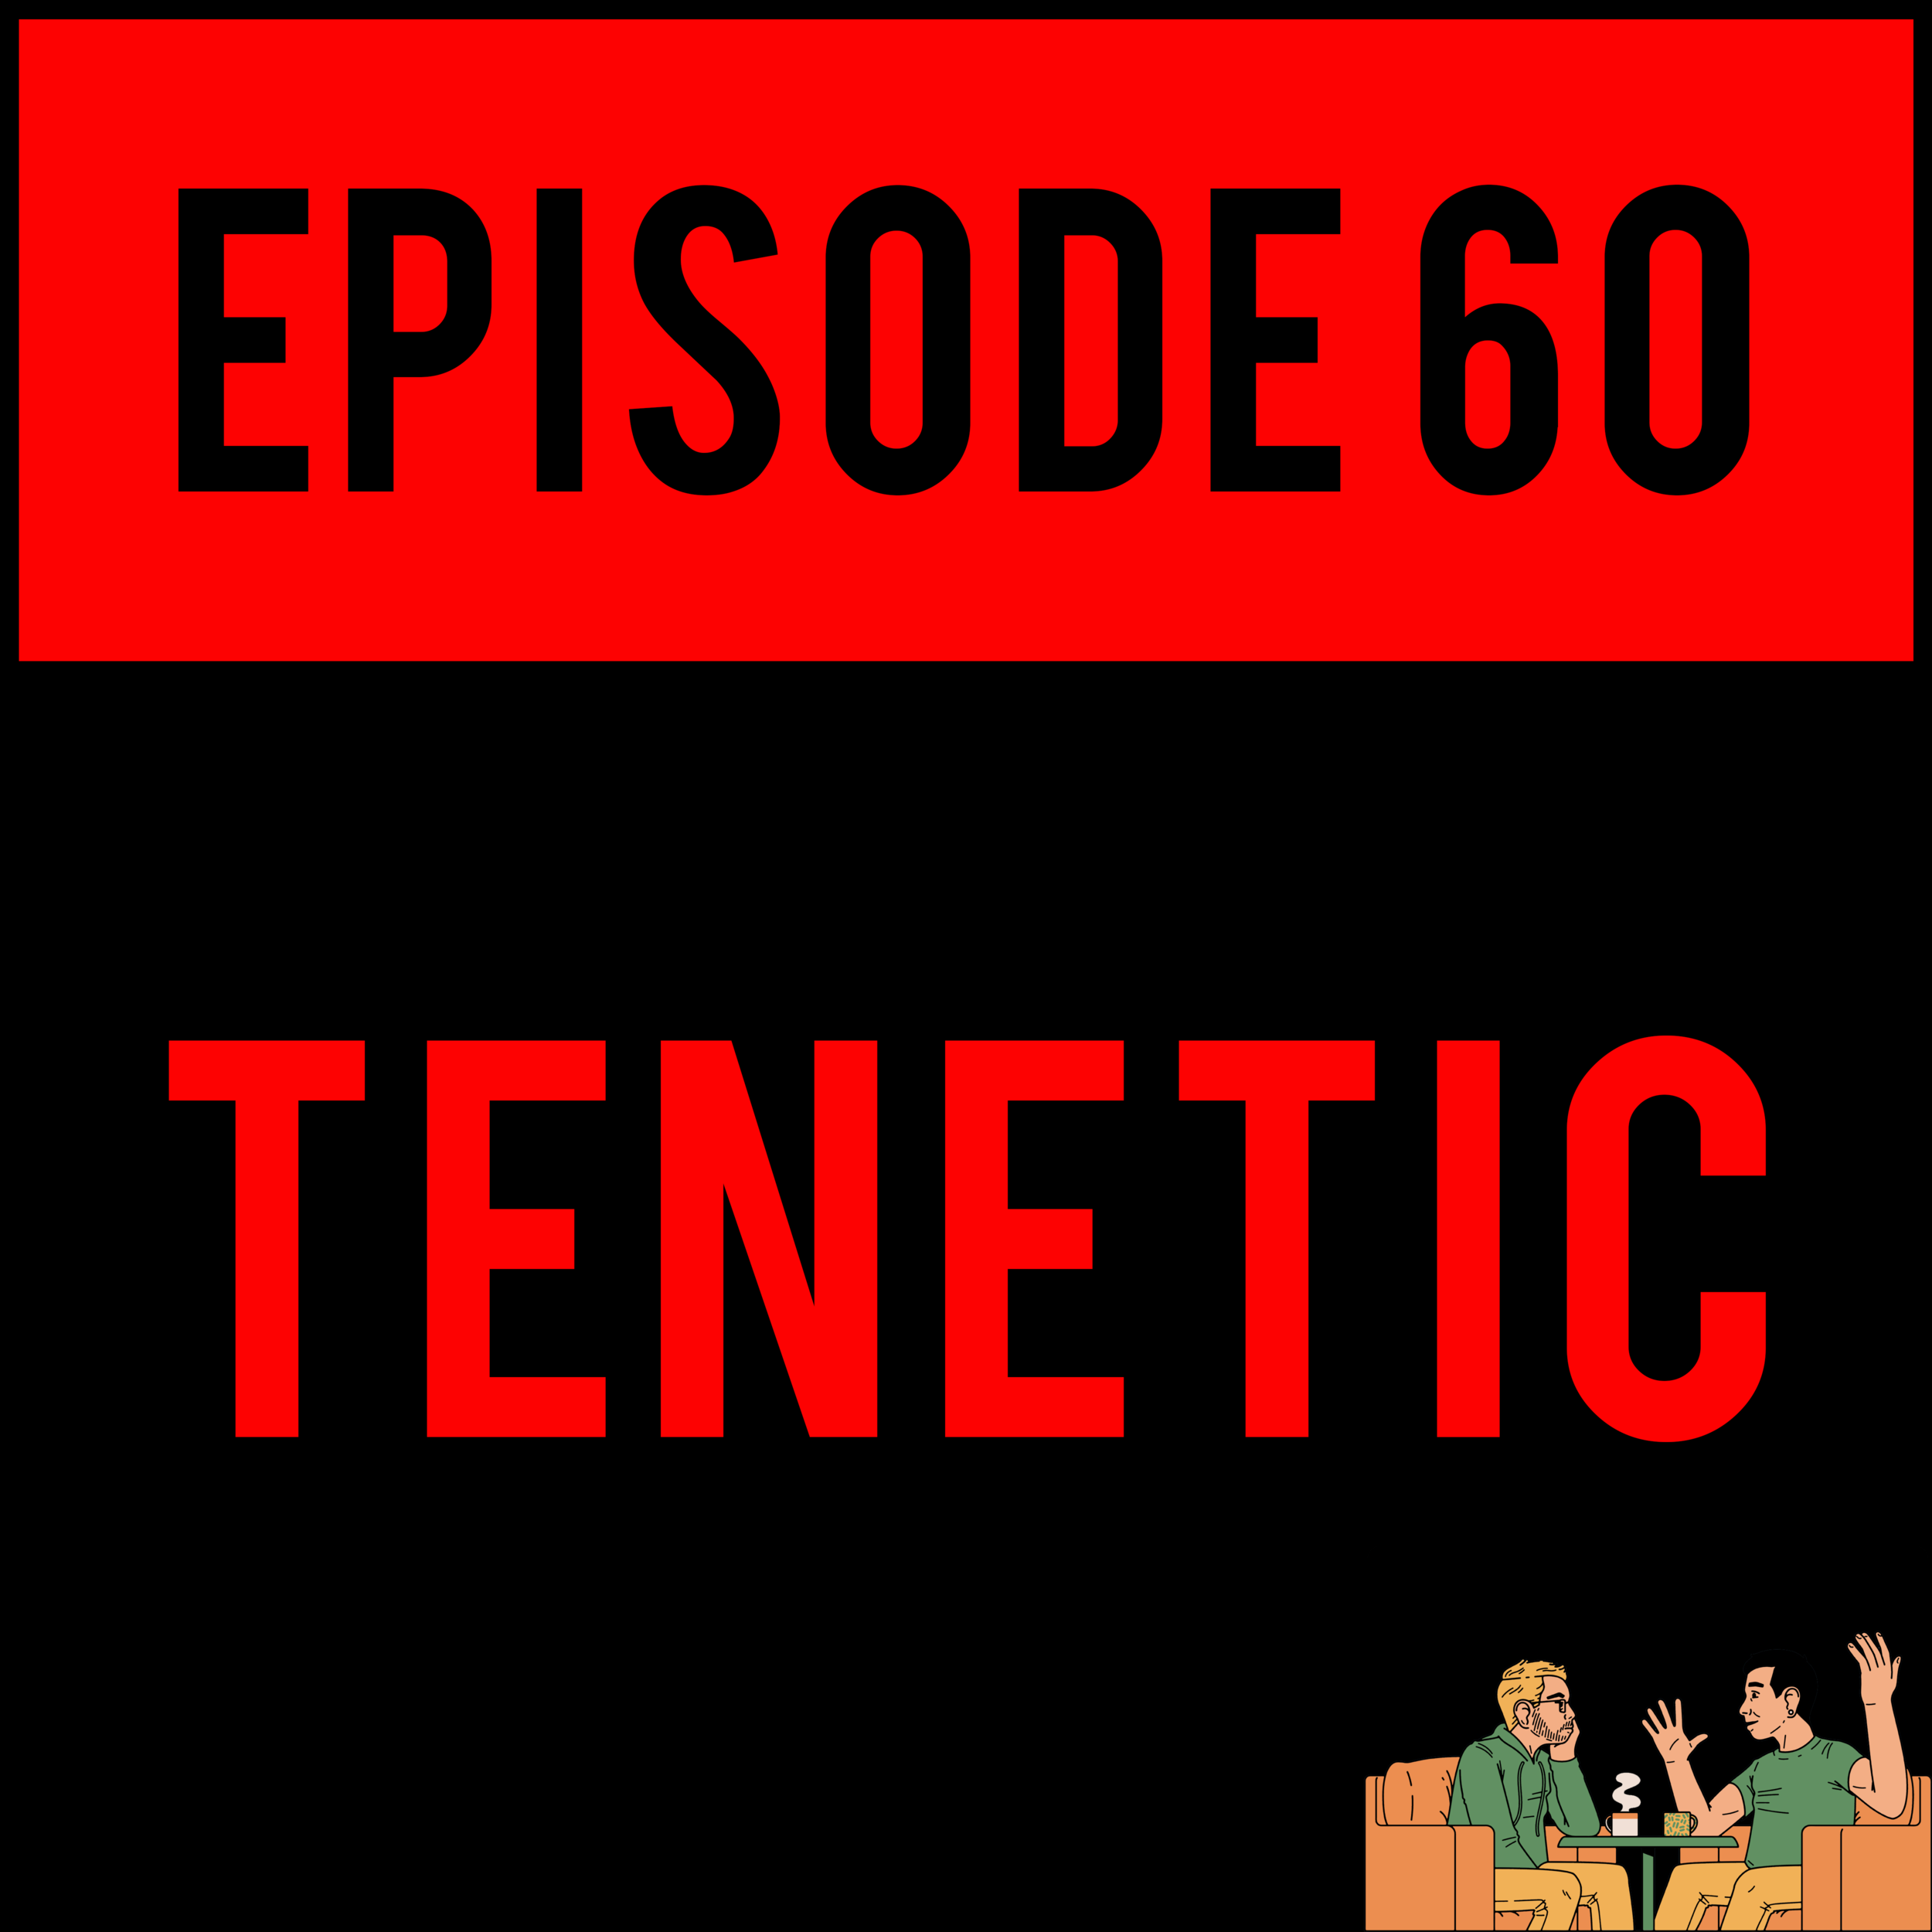 "EPISODE 60 - Alex officially joins the #logang, Tony thinks Indie Rock is just Lana Delrey and ""Goth"" and Justyn is urging you to subscribe to PewDiePie. TENETIC - EPISODE 60 is gonna pull them cheeks apart."